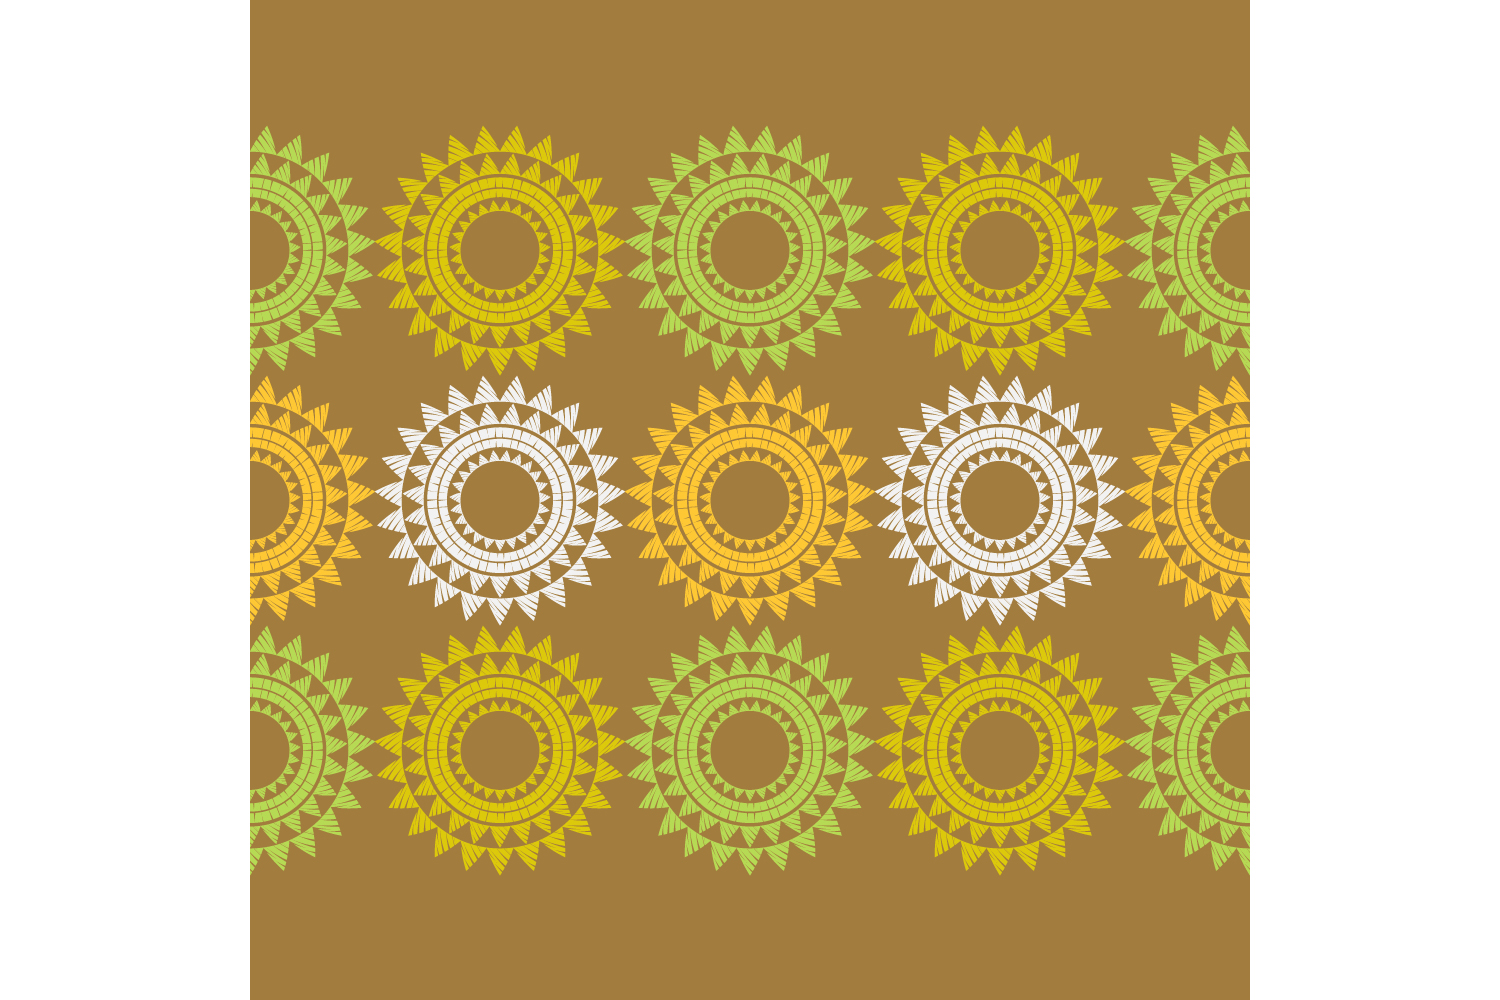 Polka dot ethnic ornament. Set of 10 seamless patterns. example image 10